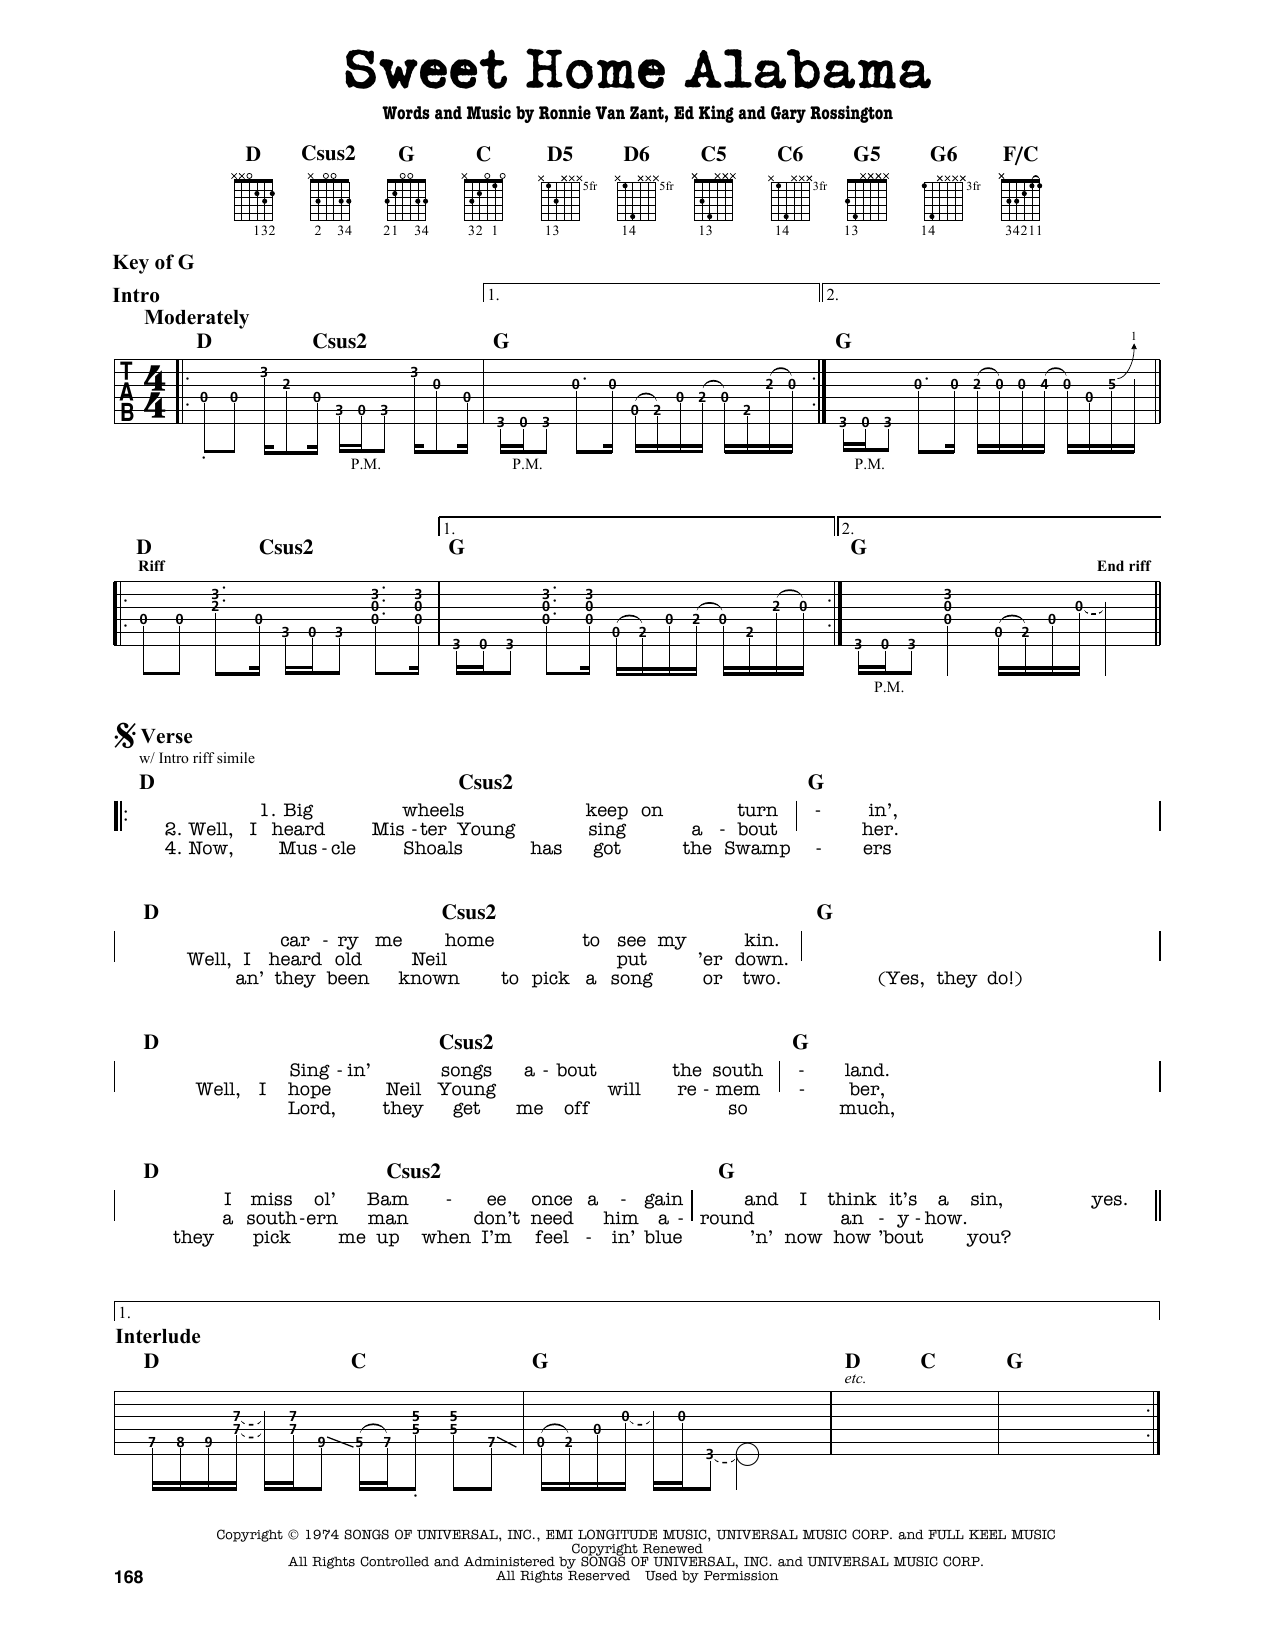 Where the skies are so blue and the governor's true. Sweet Home Alabama Sheet Music Lynyrd Skynyrd Guitar Lead Sheet